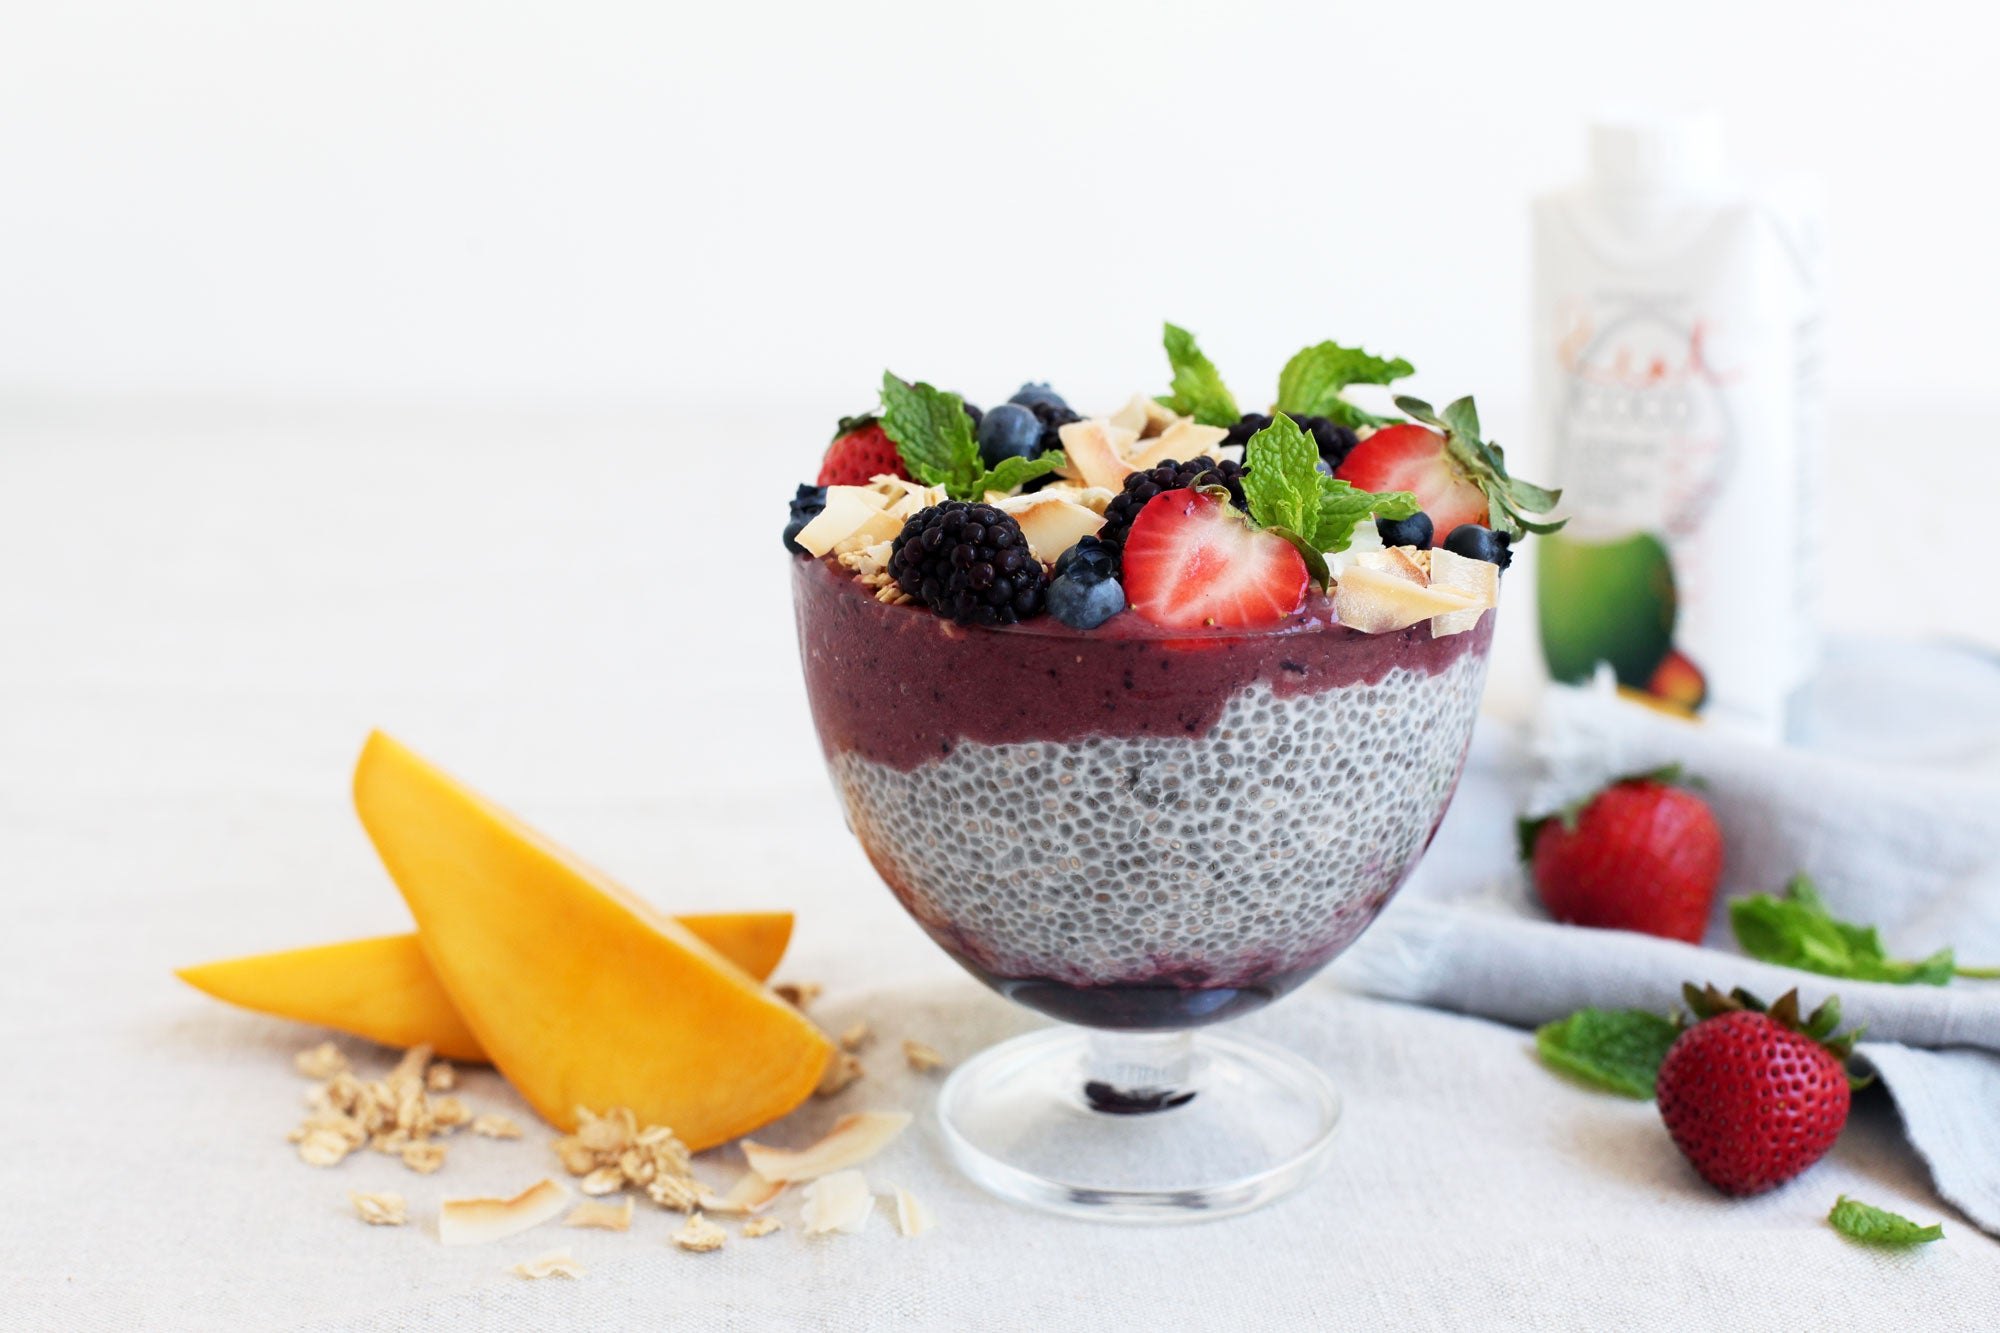 Acai-Chia Parfait layered with Berries